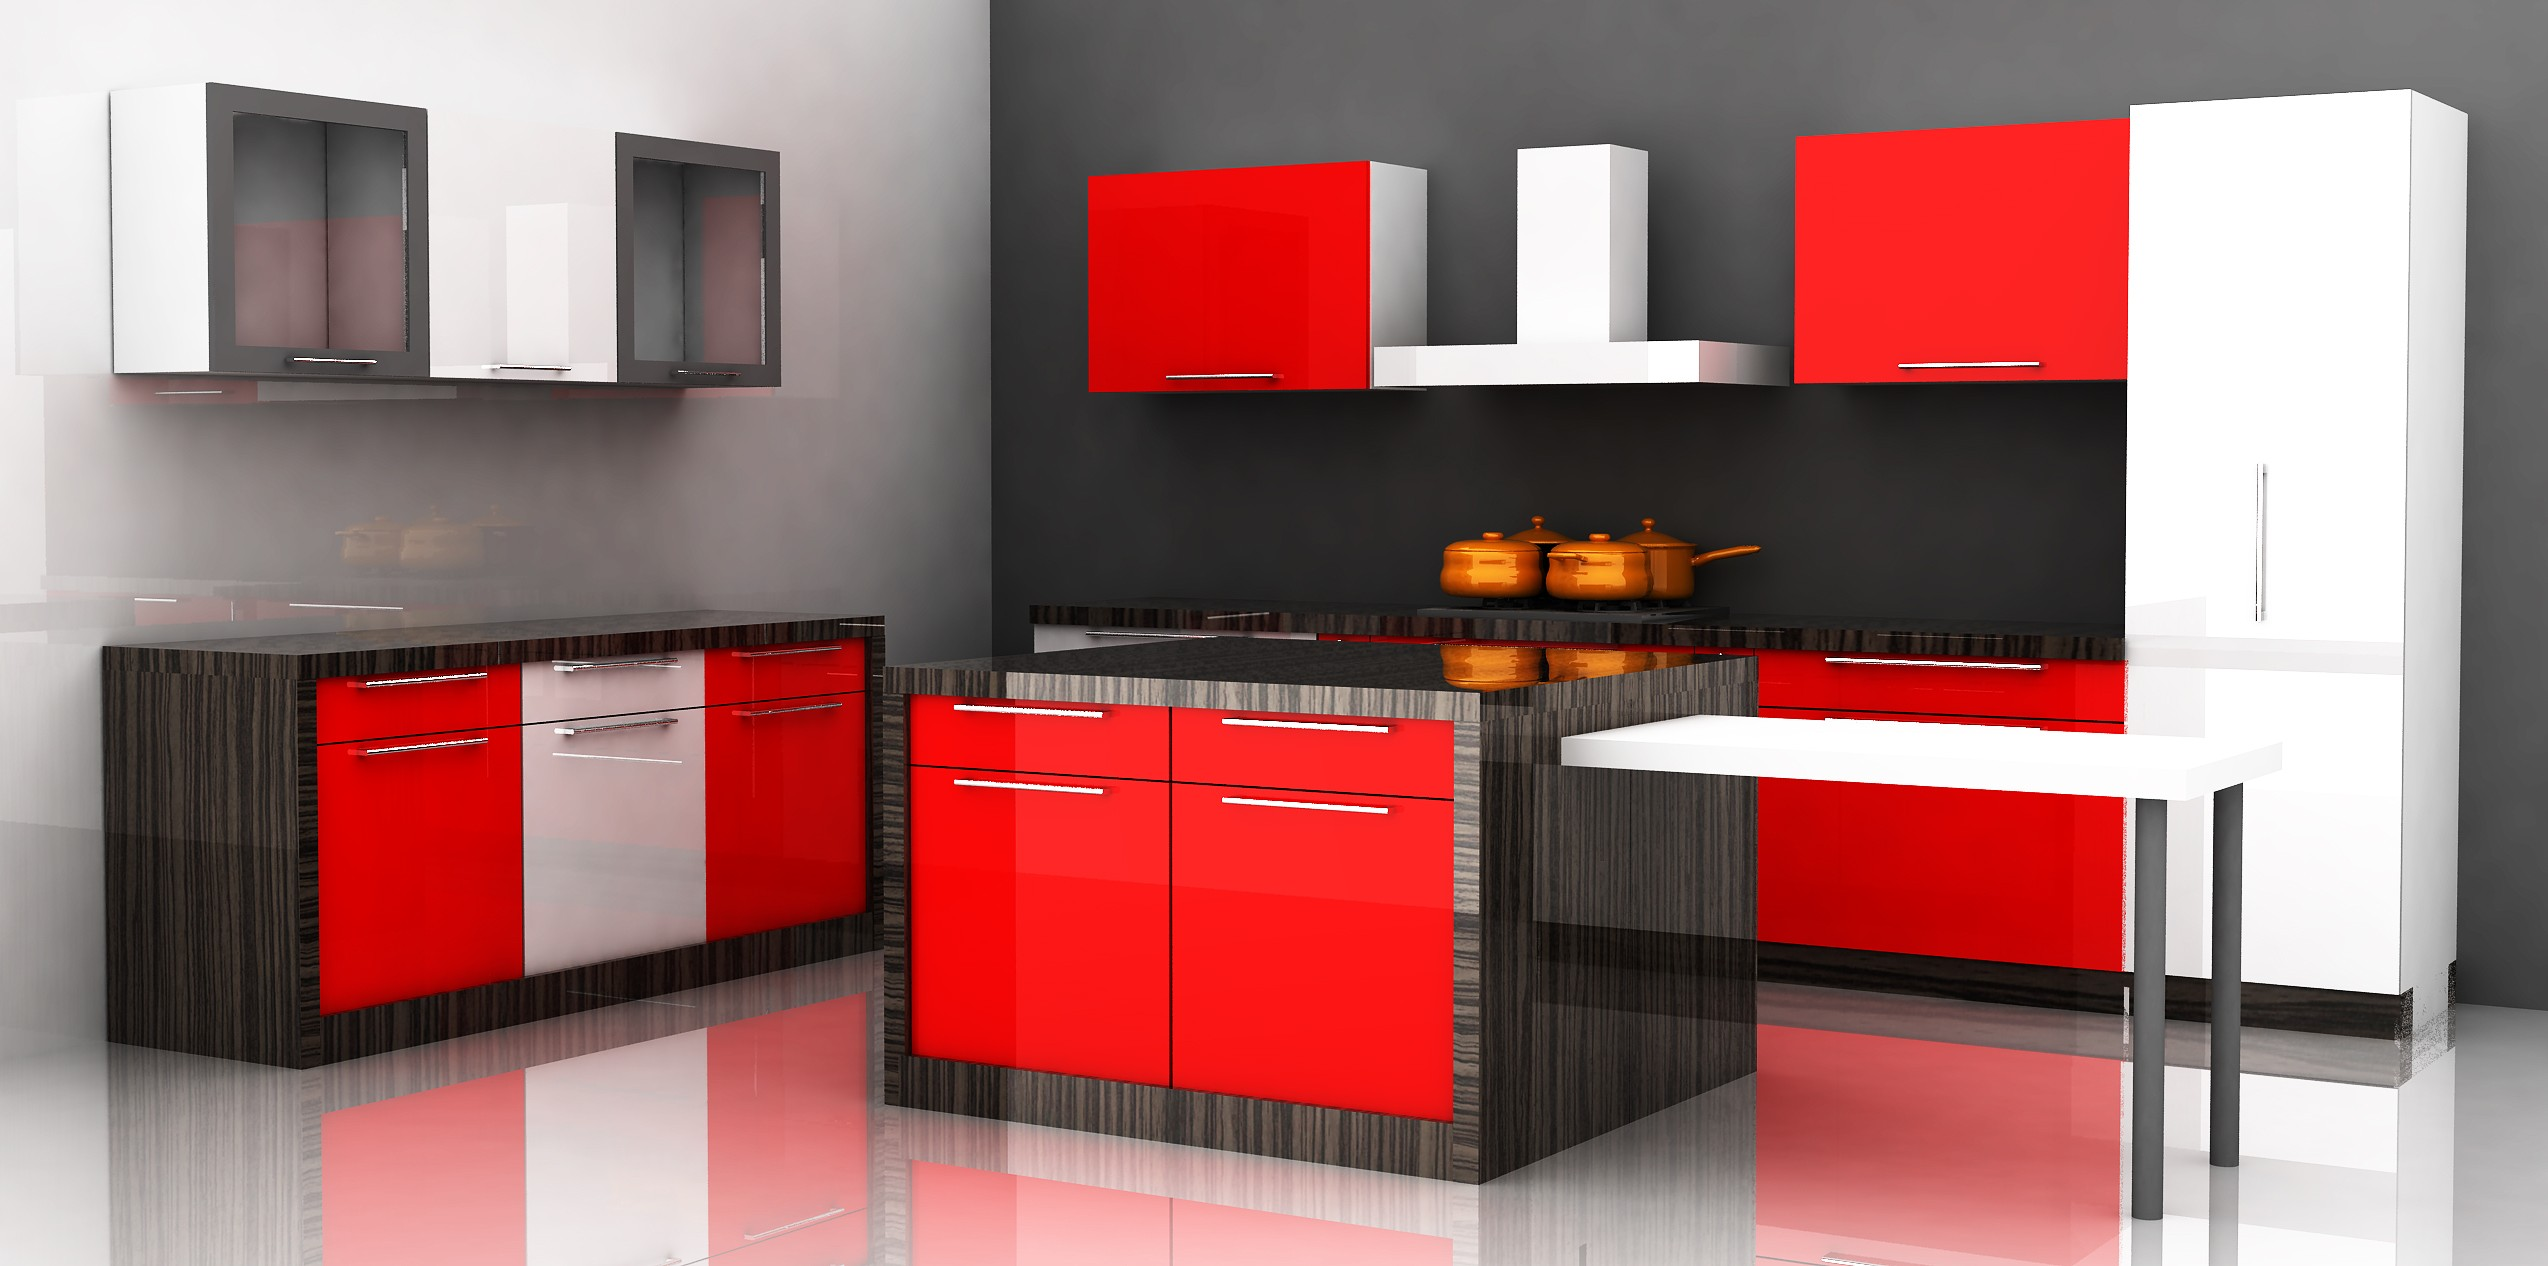 the red and black colored ply on the drawers and storage looks damn cool the type of the modular kitchen is island modular kitchen